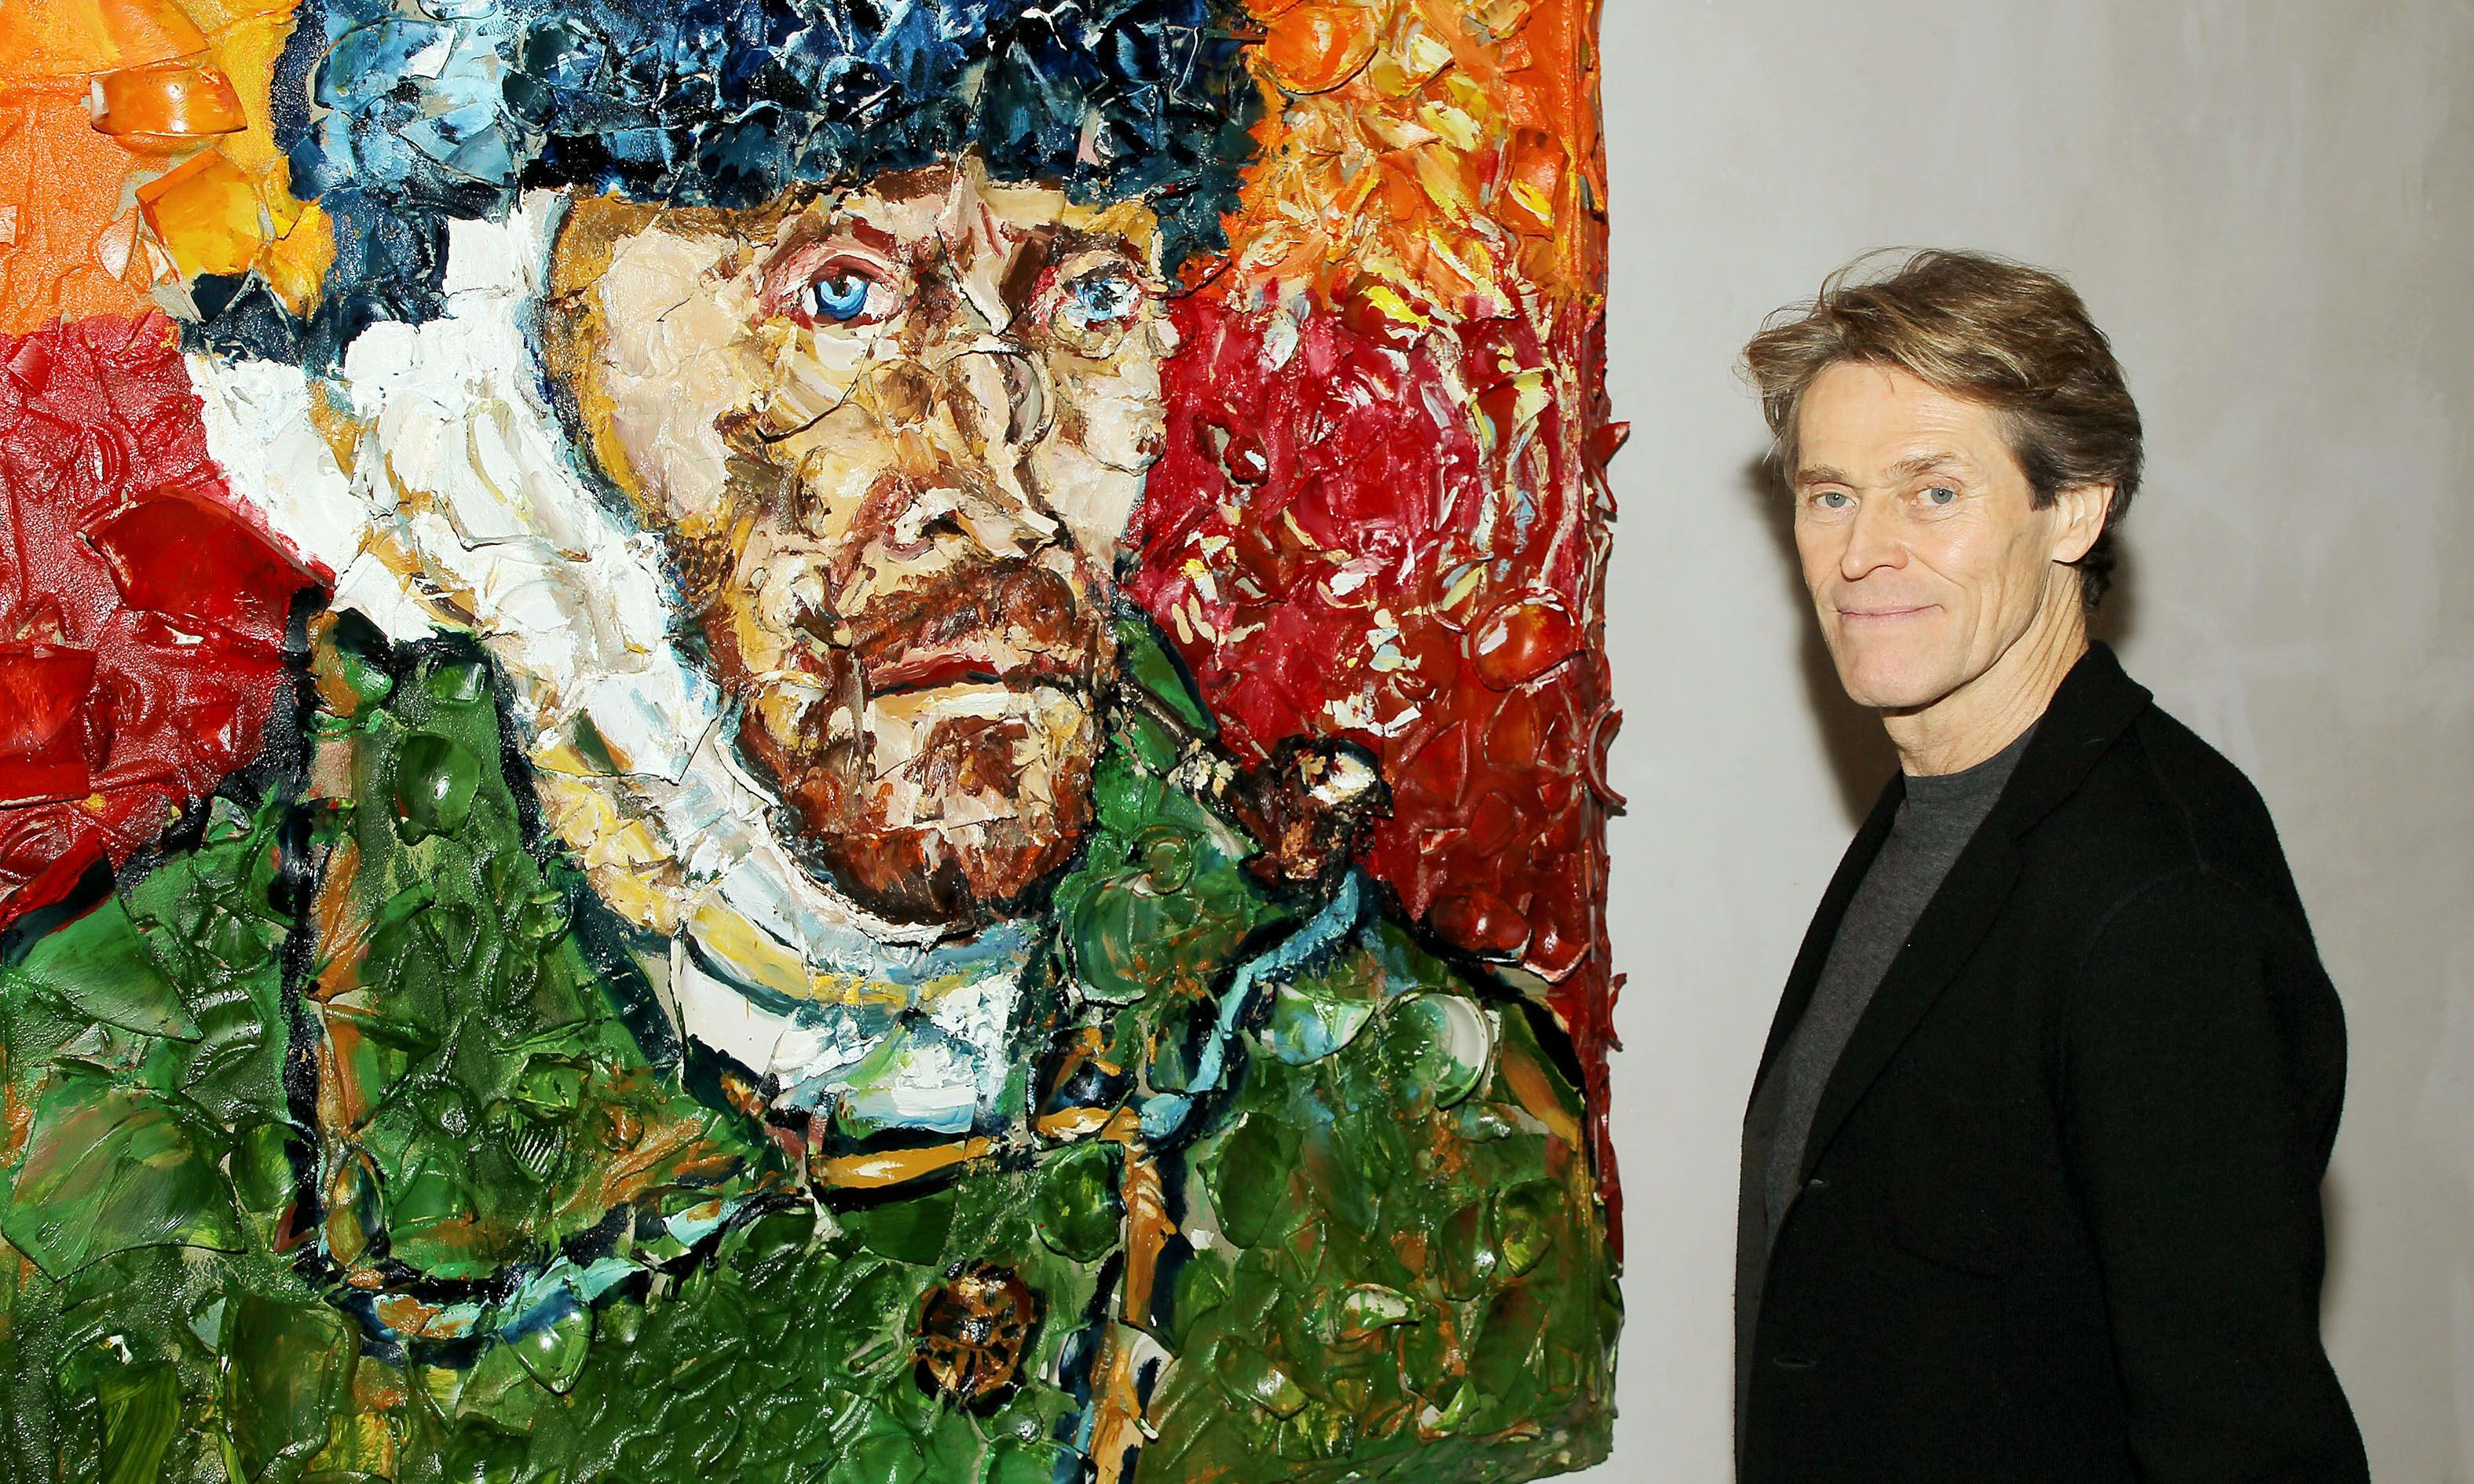 Willem Dafoe: 'With success comes certain things that corrupt you'